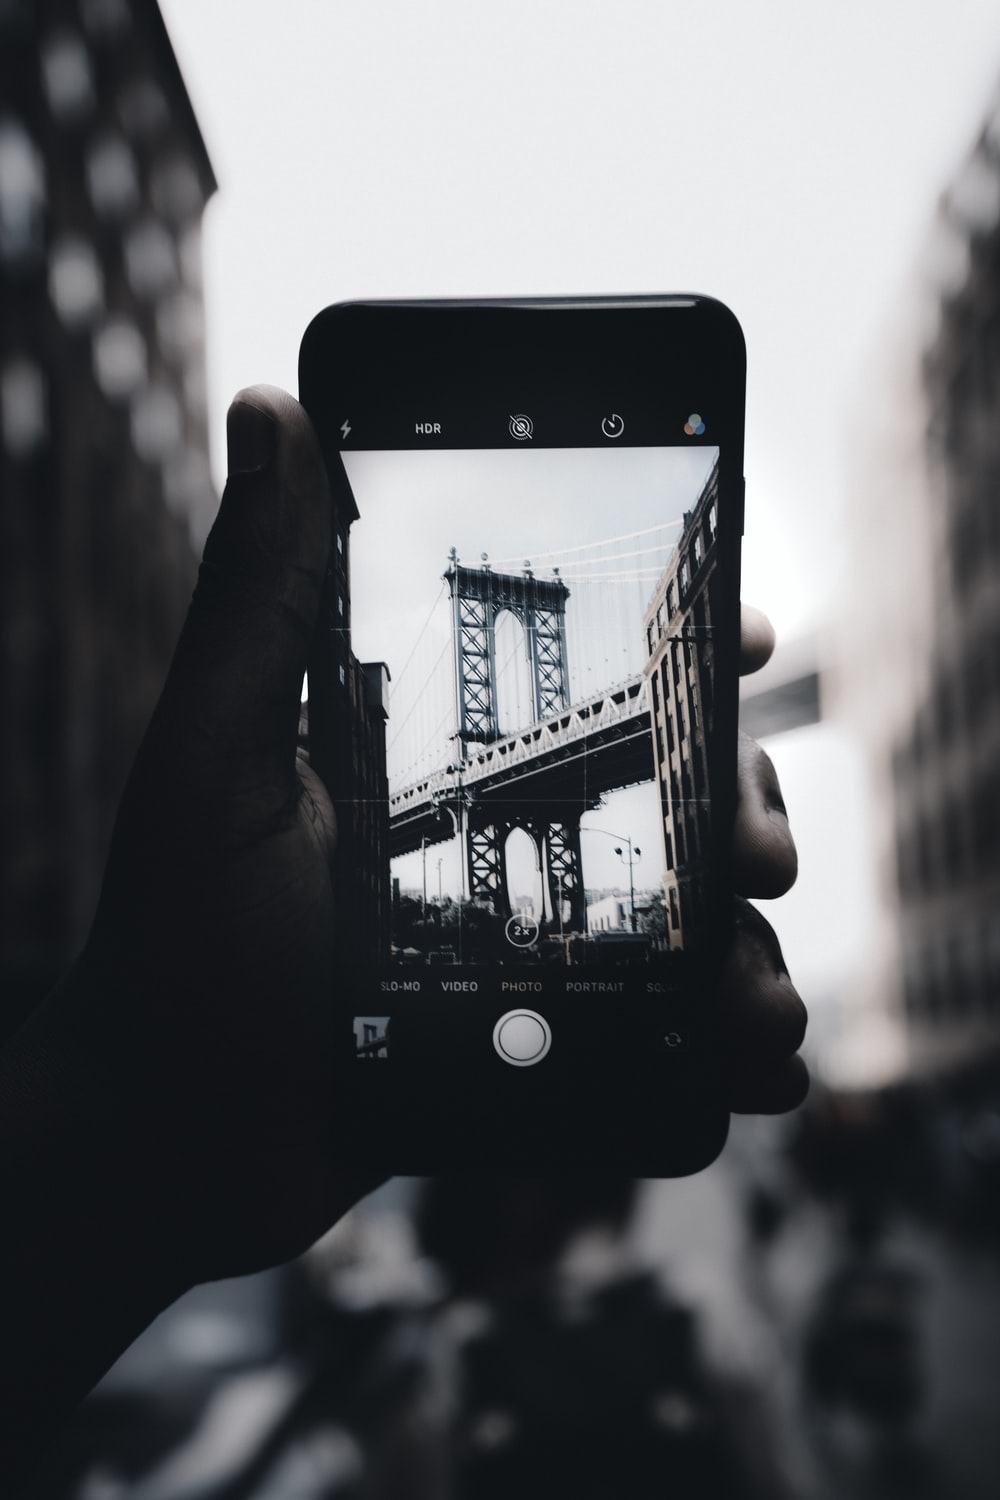 grayscale photography of person holding iPhone capturing bridge